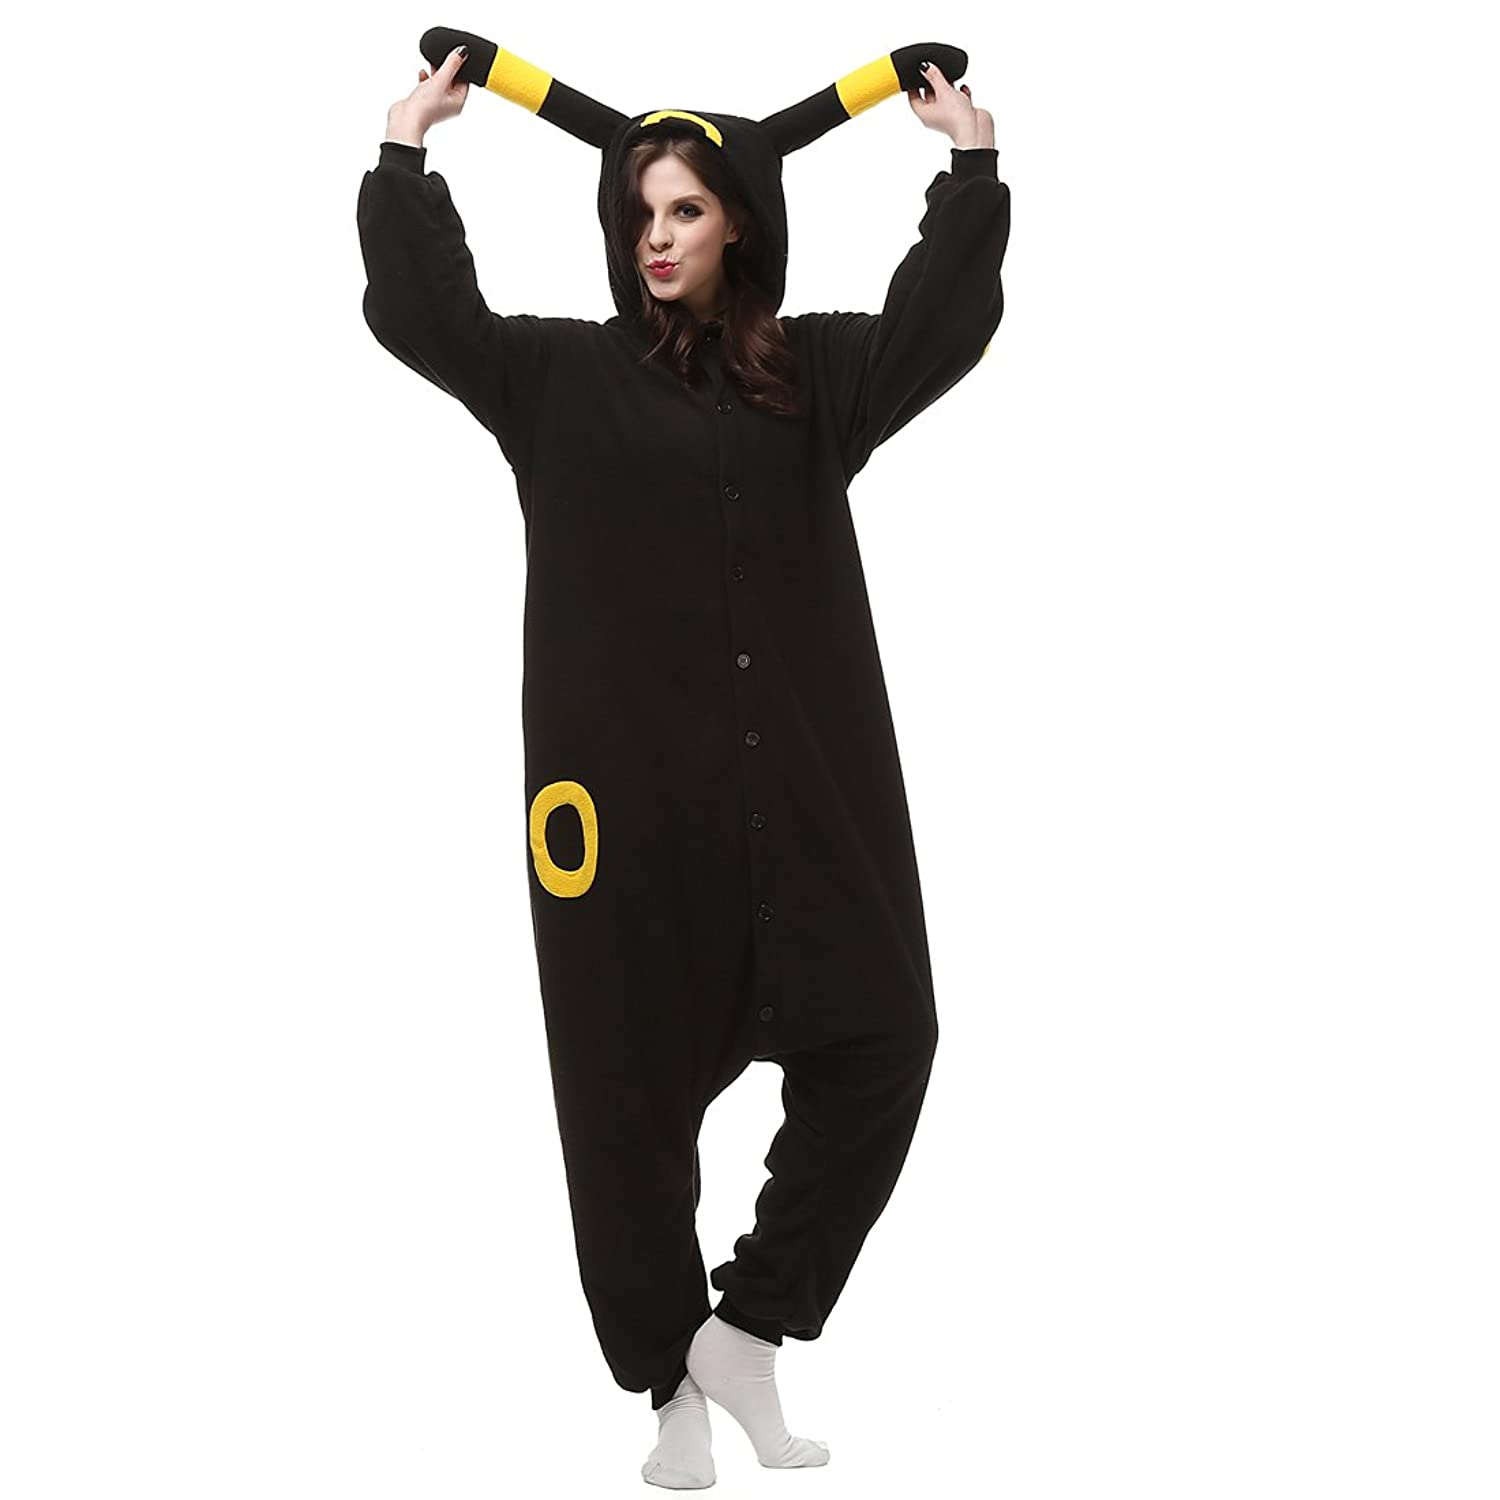 Casa Adult Pajamas - Unisex Fleece Onesie Sleepsuit Animal Onesies Kigurumi Hooded Pyjama Nightwear Costume One-Piece Black Wizard S-XL